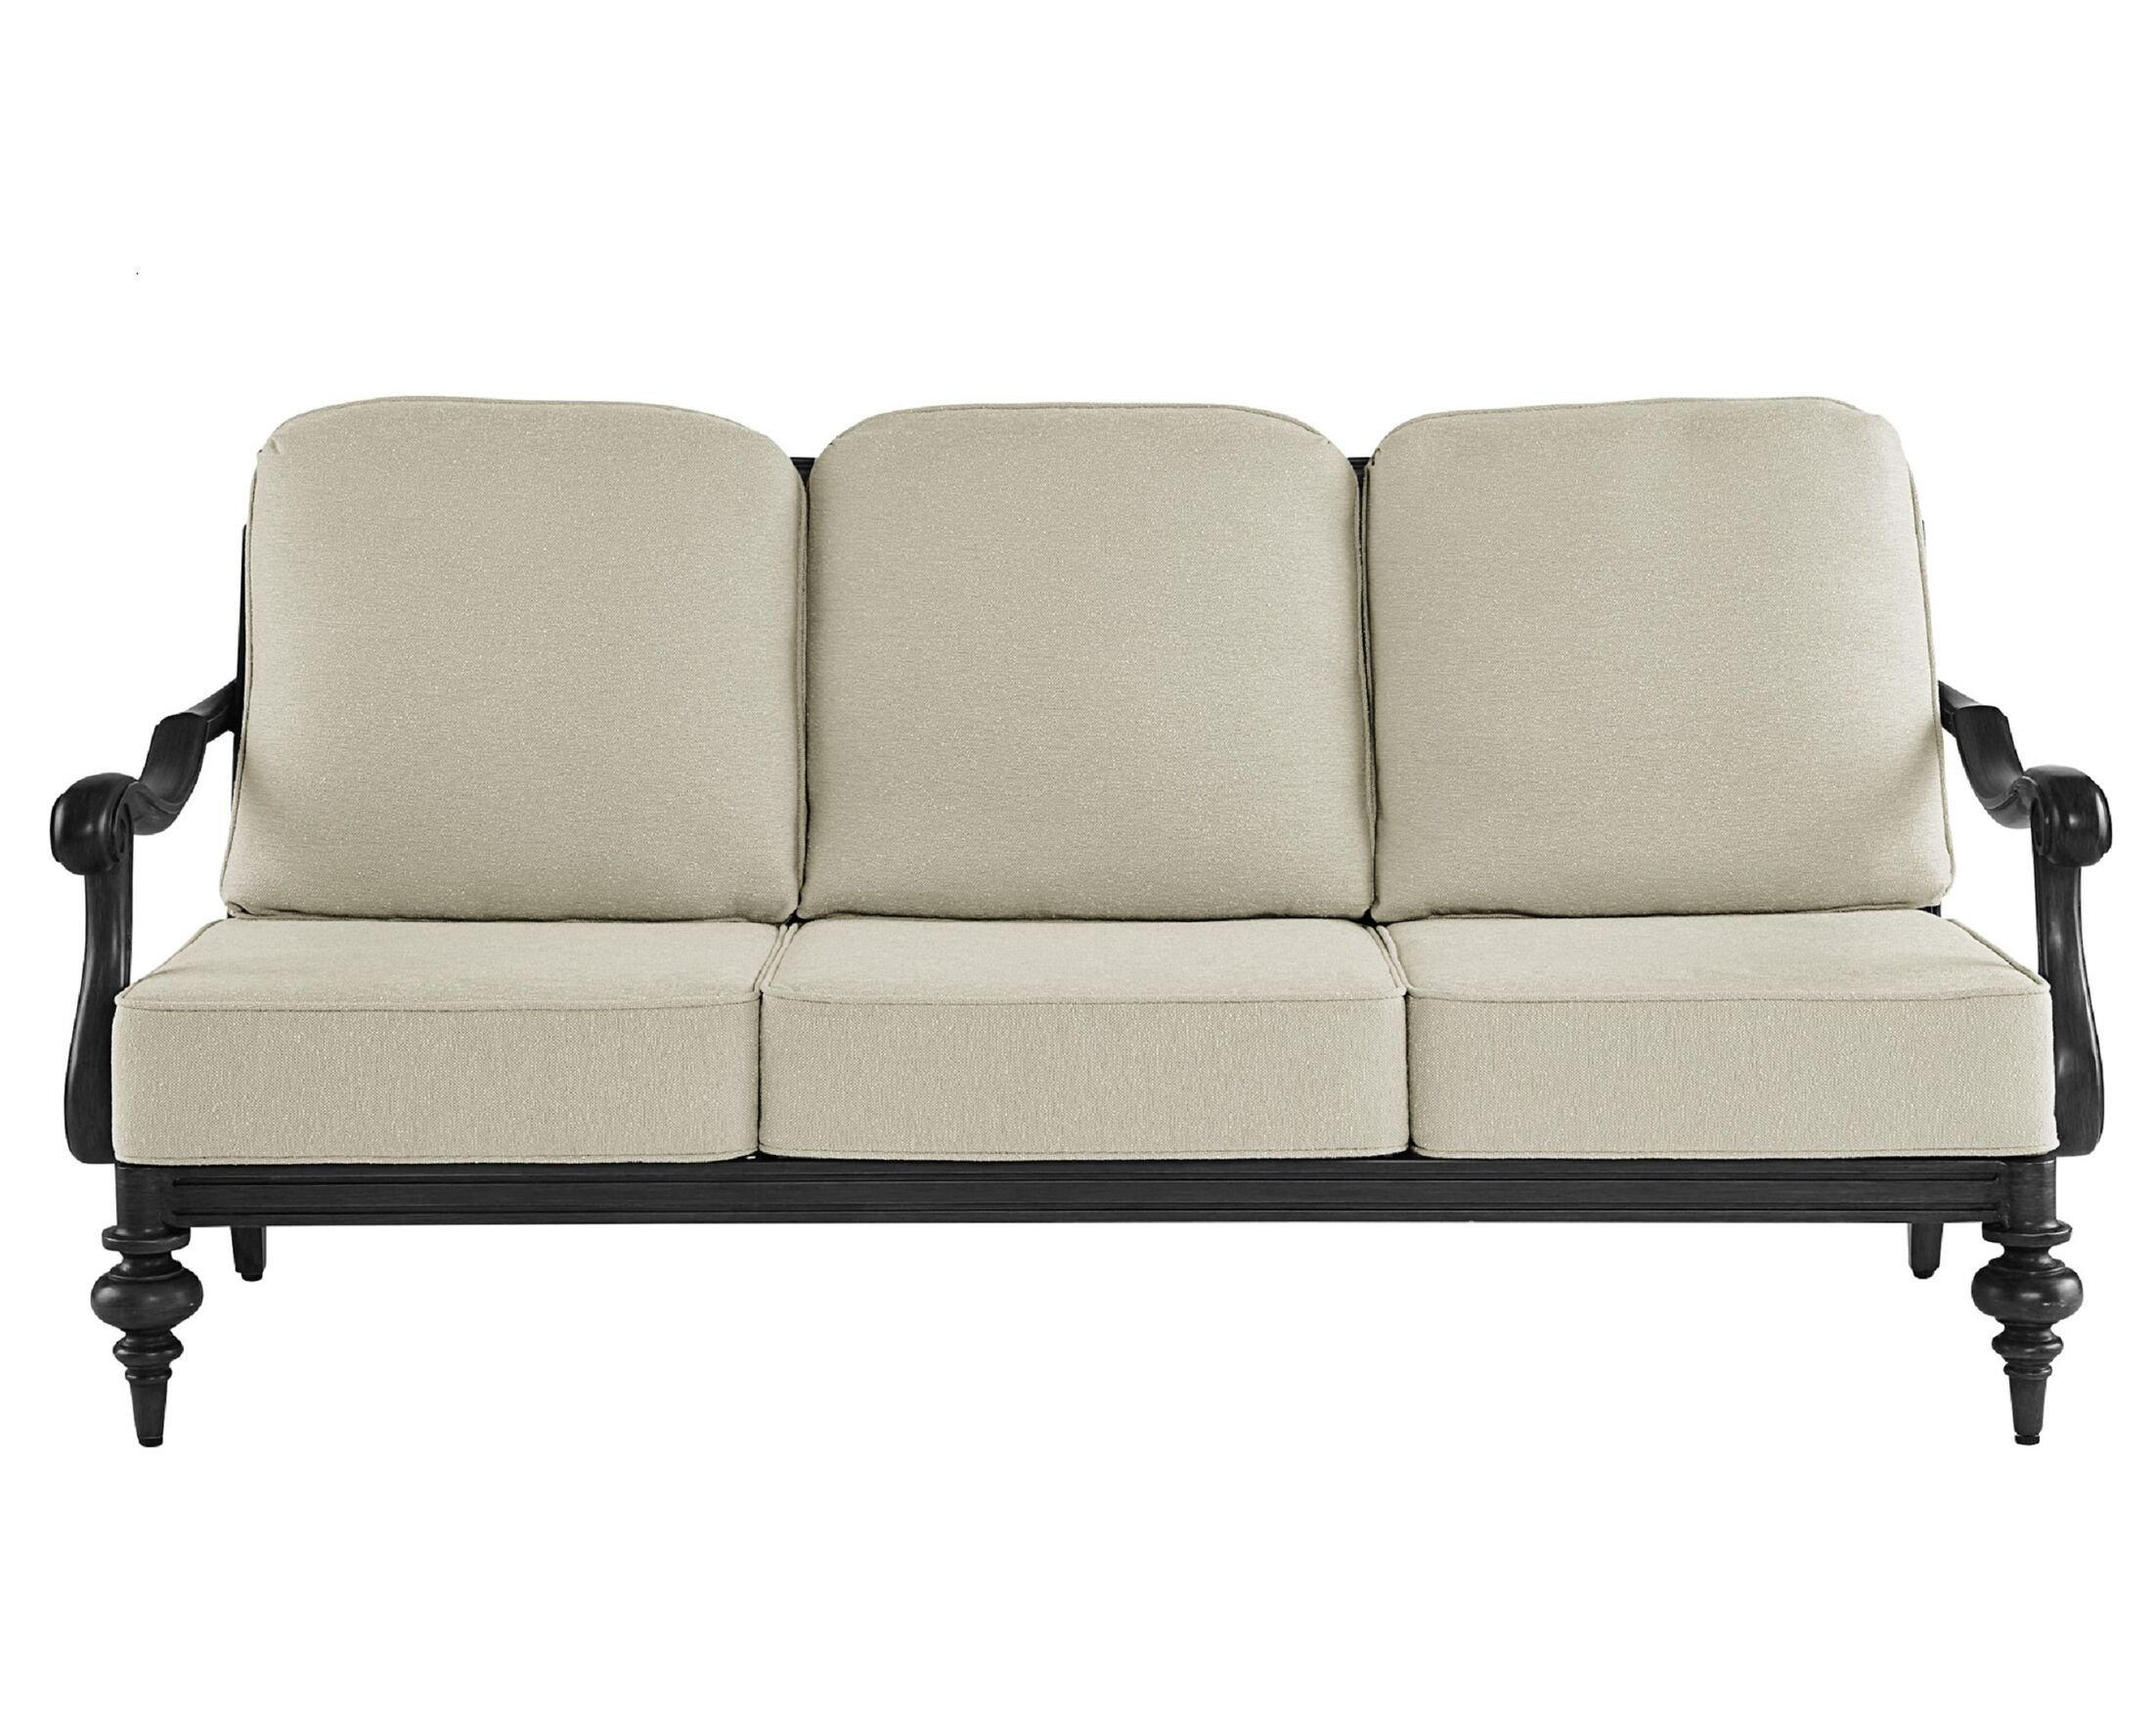 Hargrave Patio Sofa with Cushions Frame Color: Brown